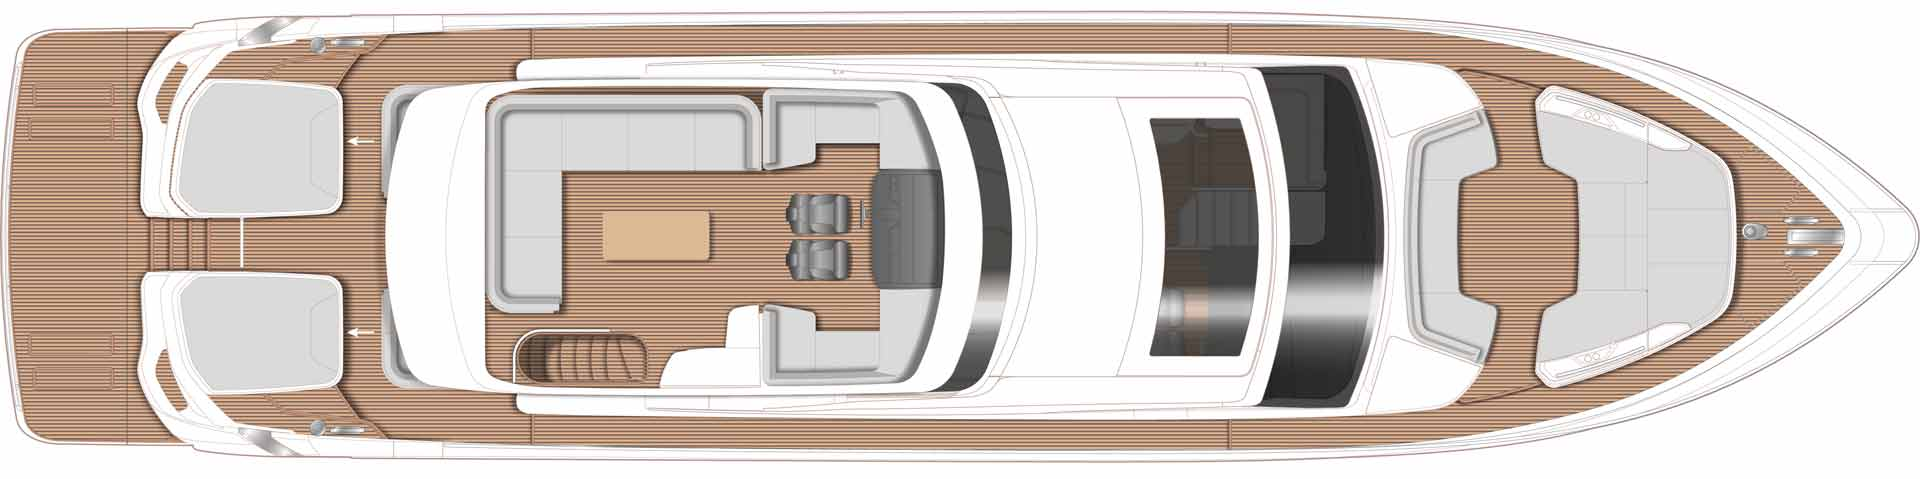 Princess S78 Layout Sportbridge